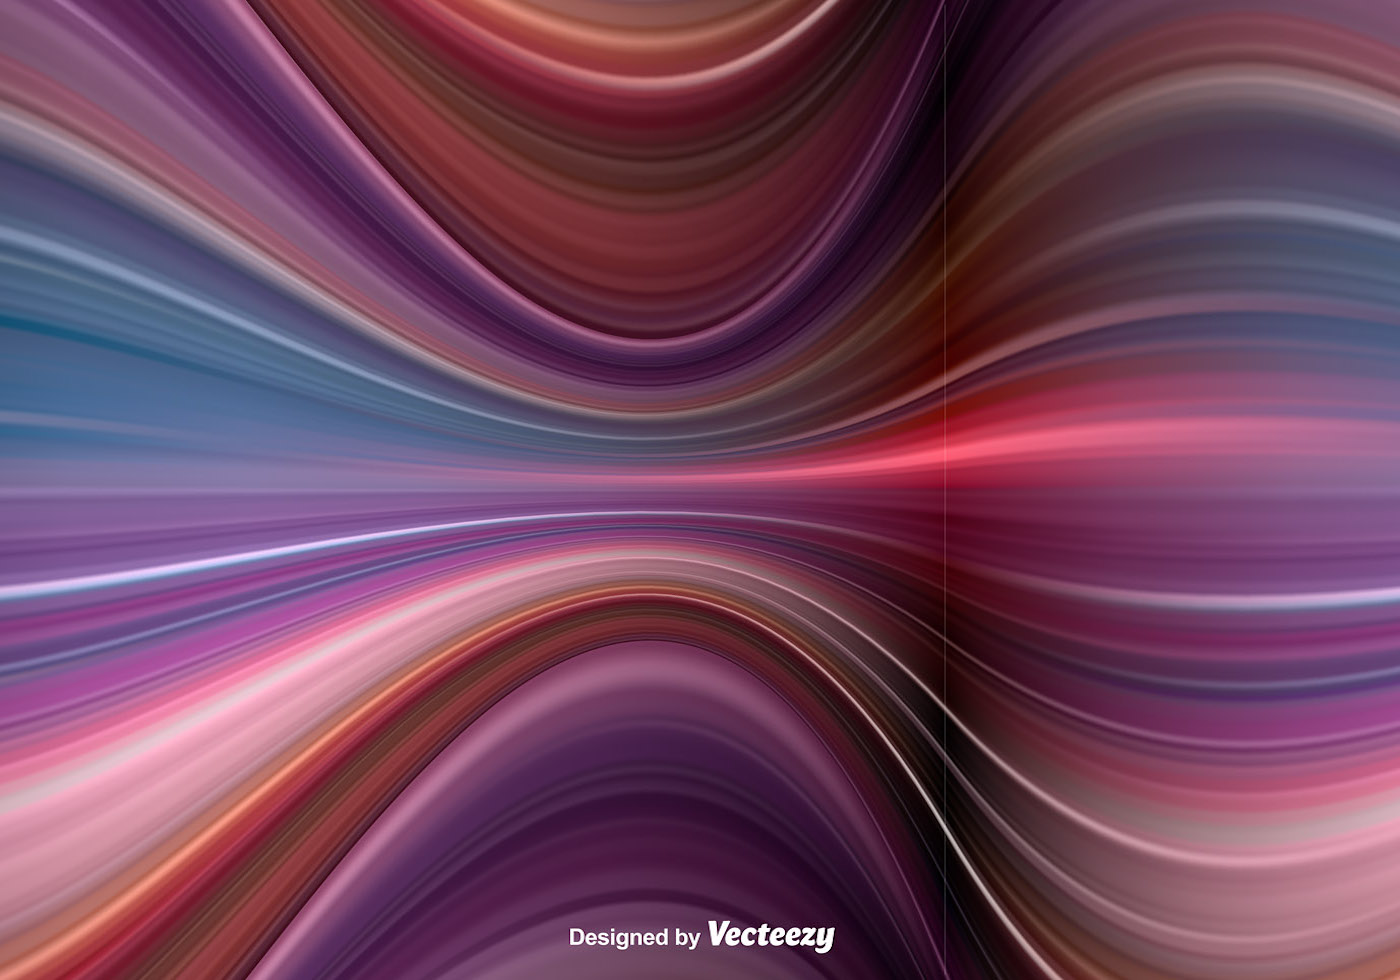 Vector Abstract Waves - Download Free Vector Art, Stock Graphics & Images